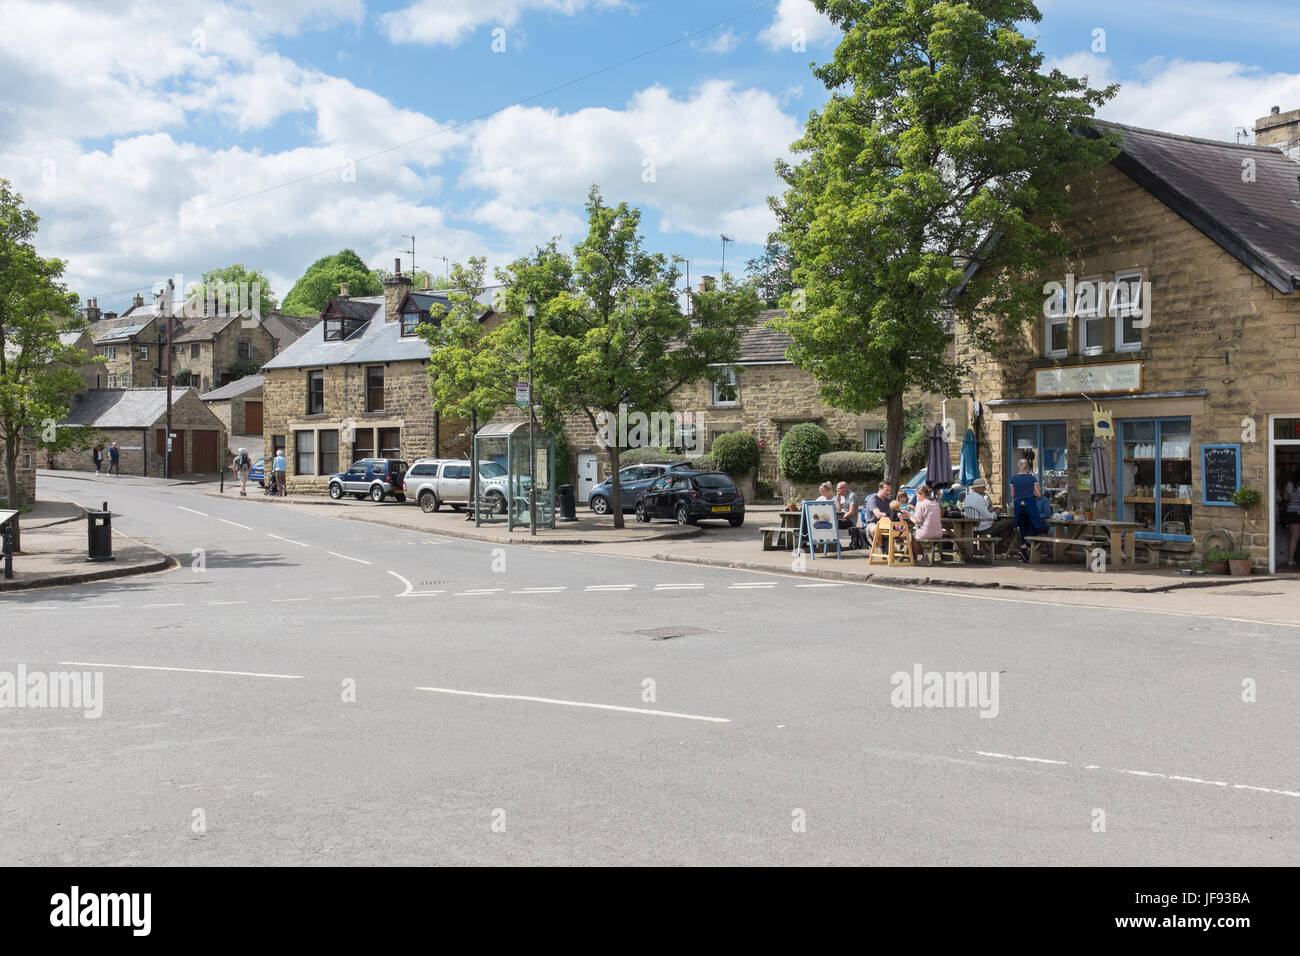 The centre of Eyam village in the Derbyshire Peak District - Stock Image